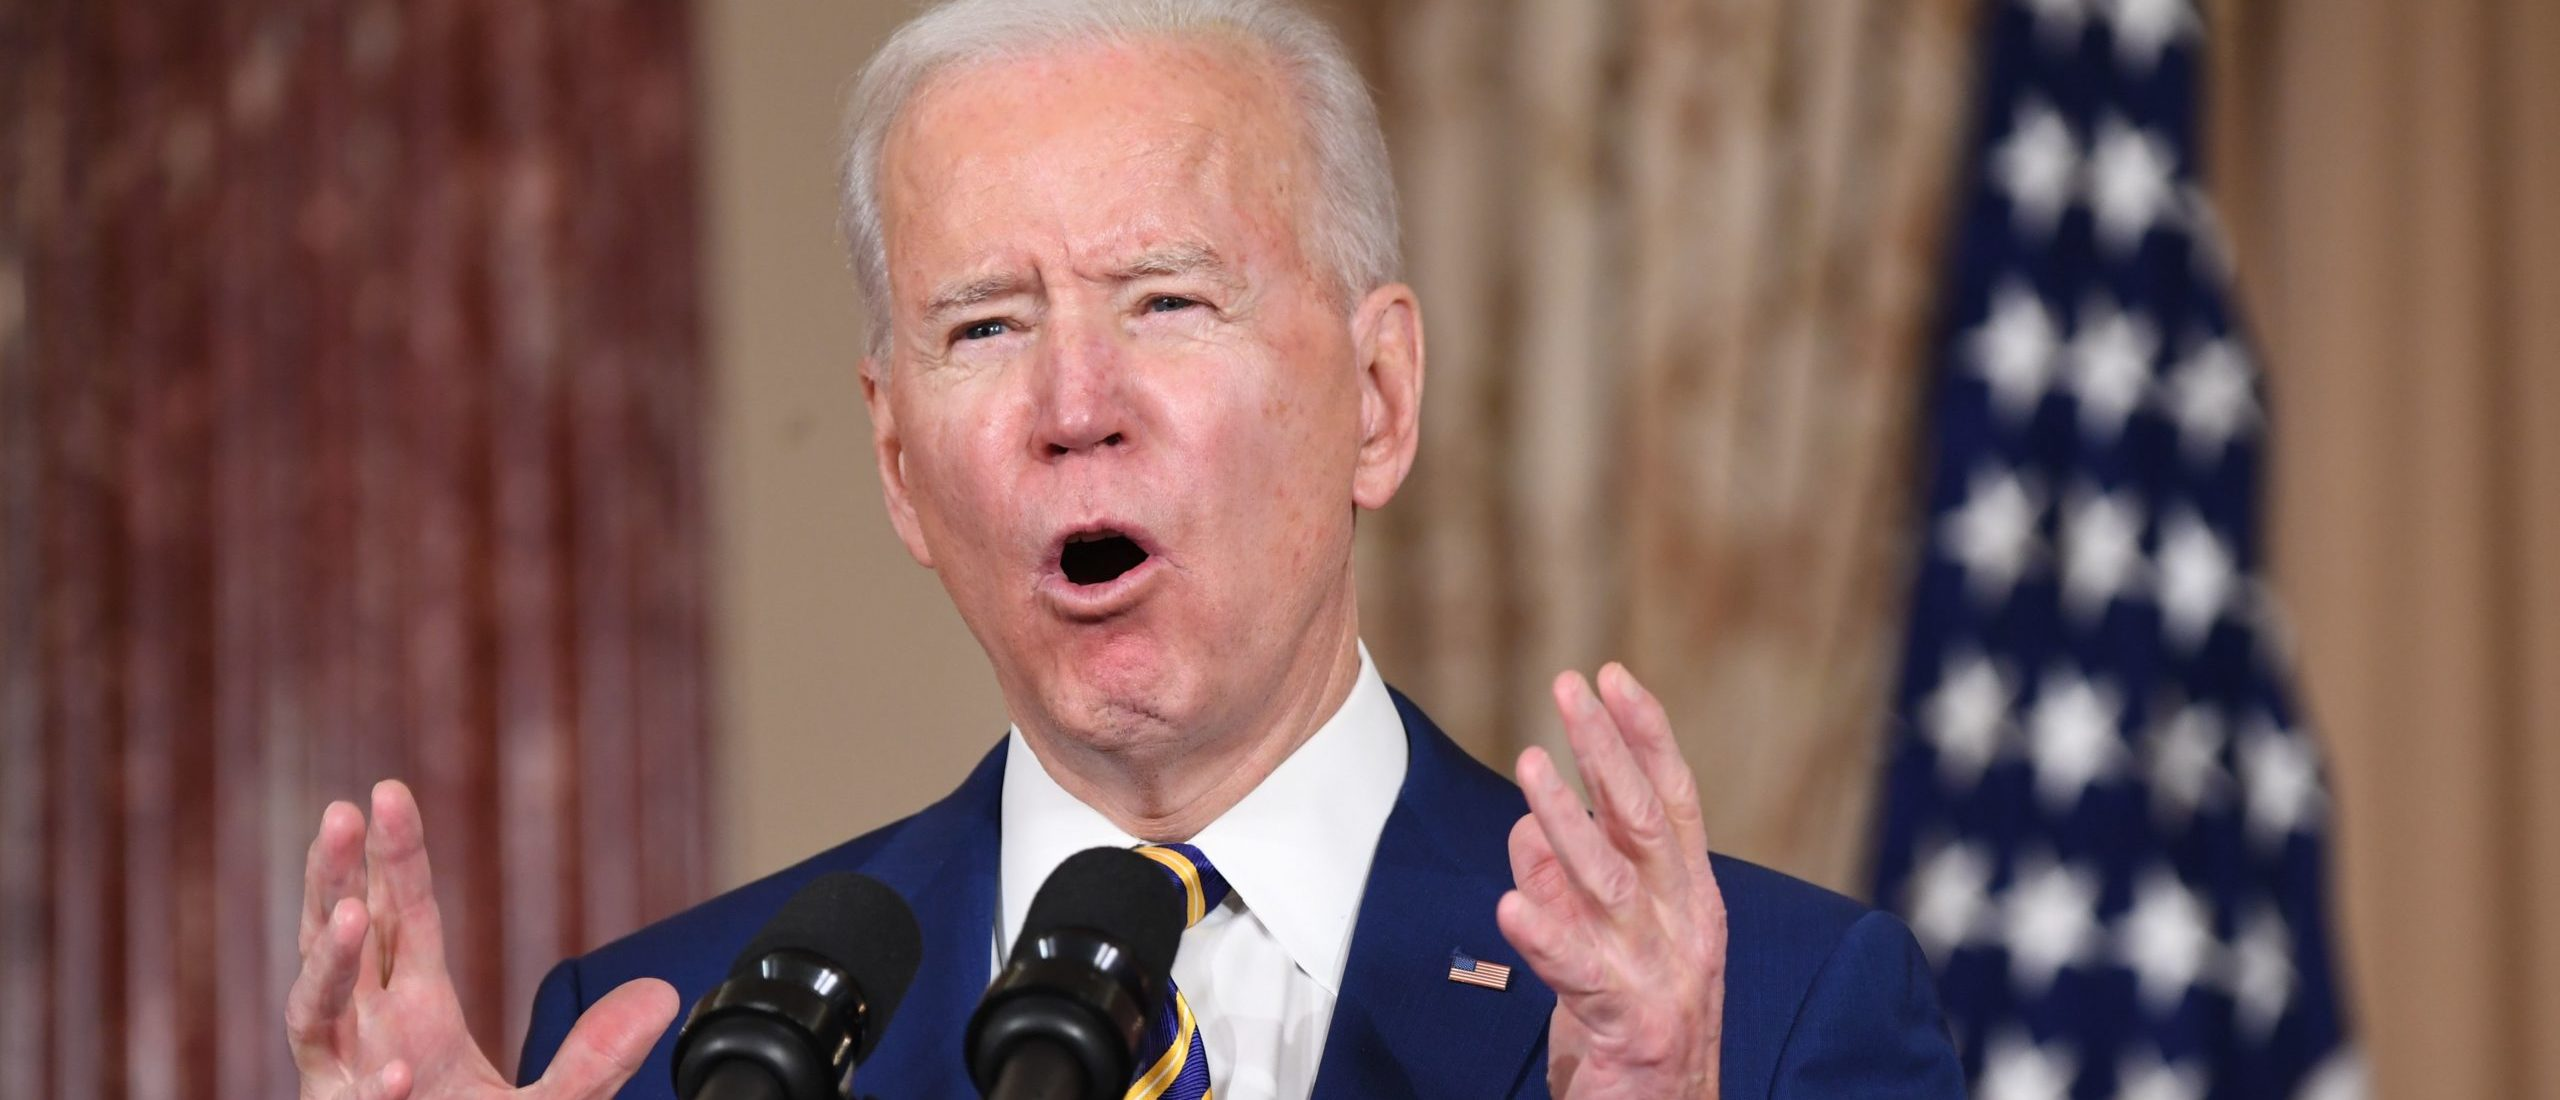 President Joe Biden speaks about foreign policy at the State Department in Washington, D.C. on Thursday. (Saul Loeb/AFP via Getty Images)